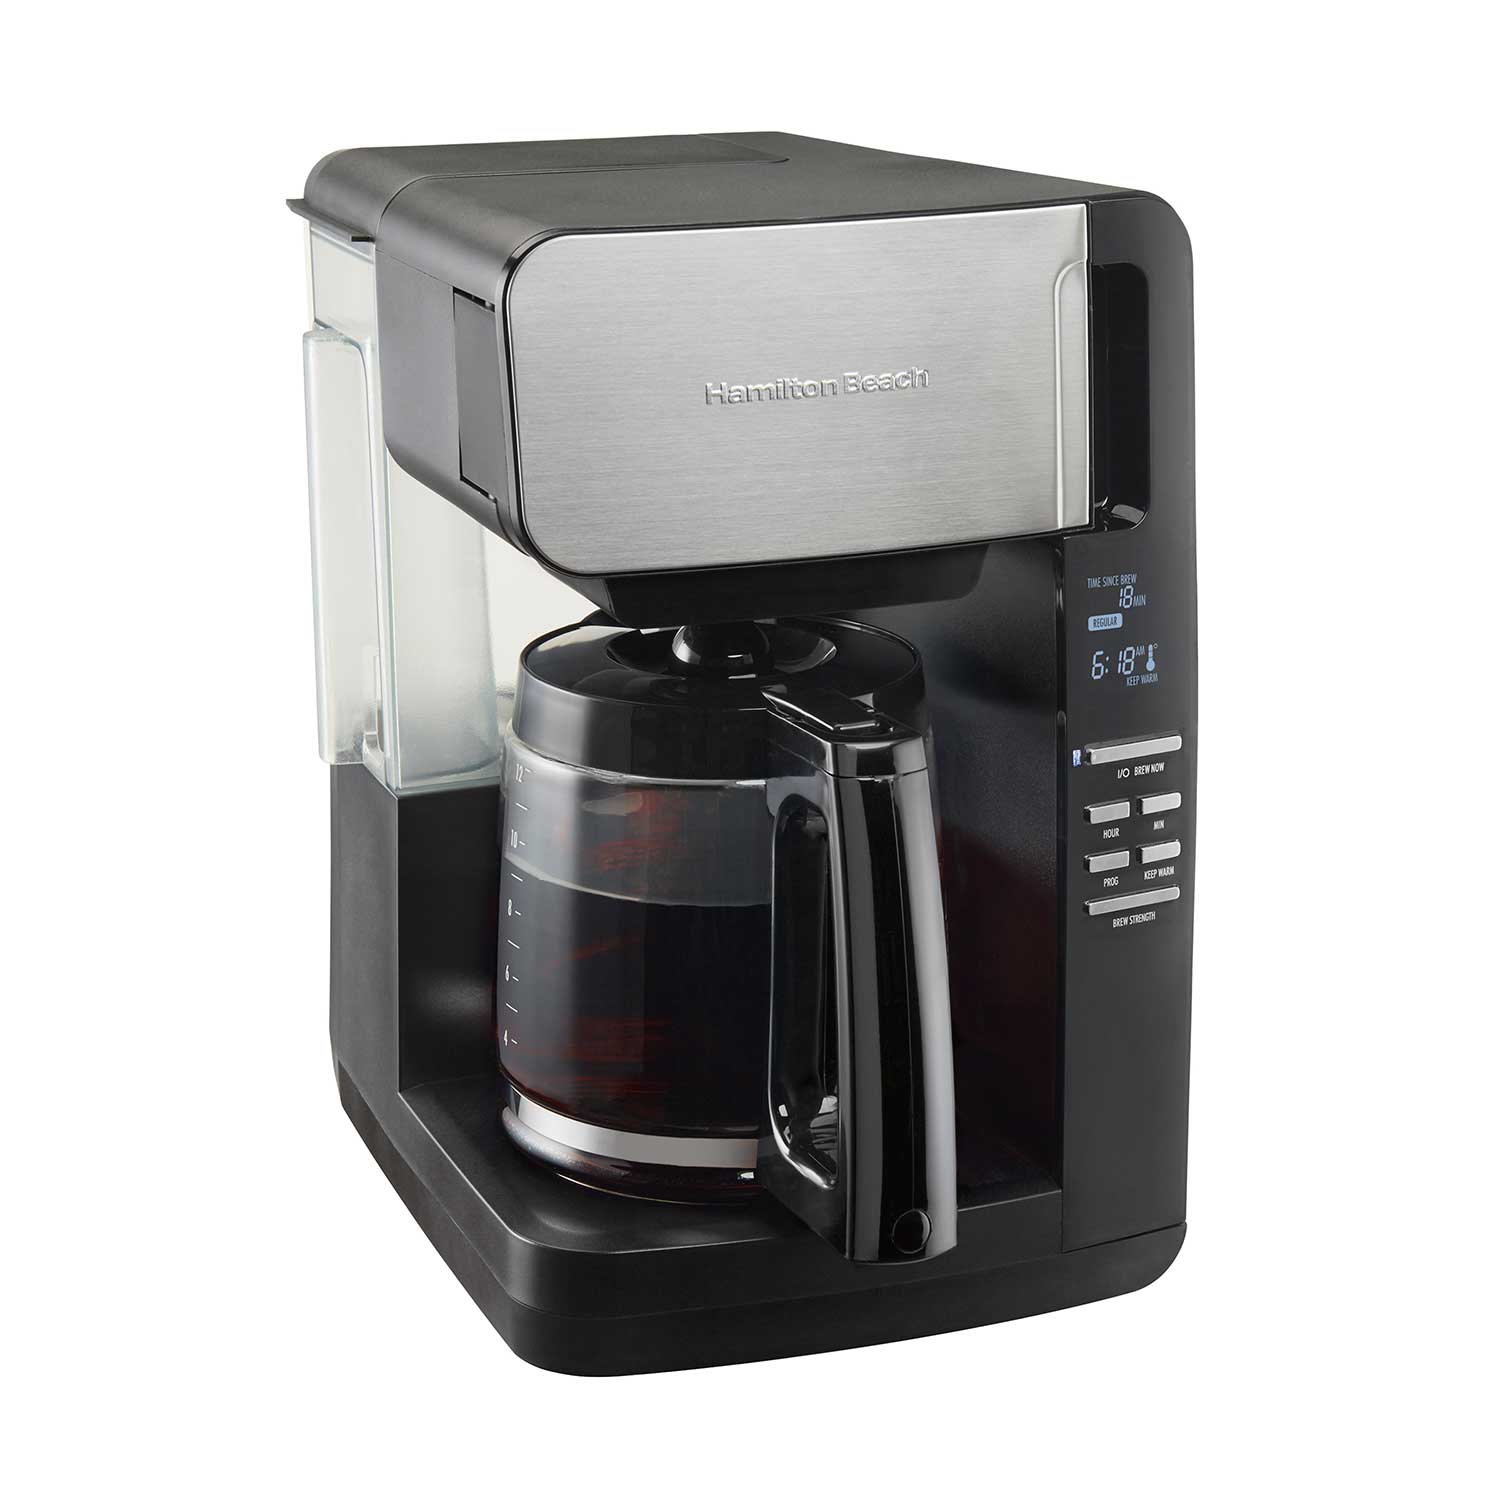 12-Cup Programmable Ultra Coffee Maker with Easy Access, Black & Stainless (46203)